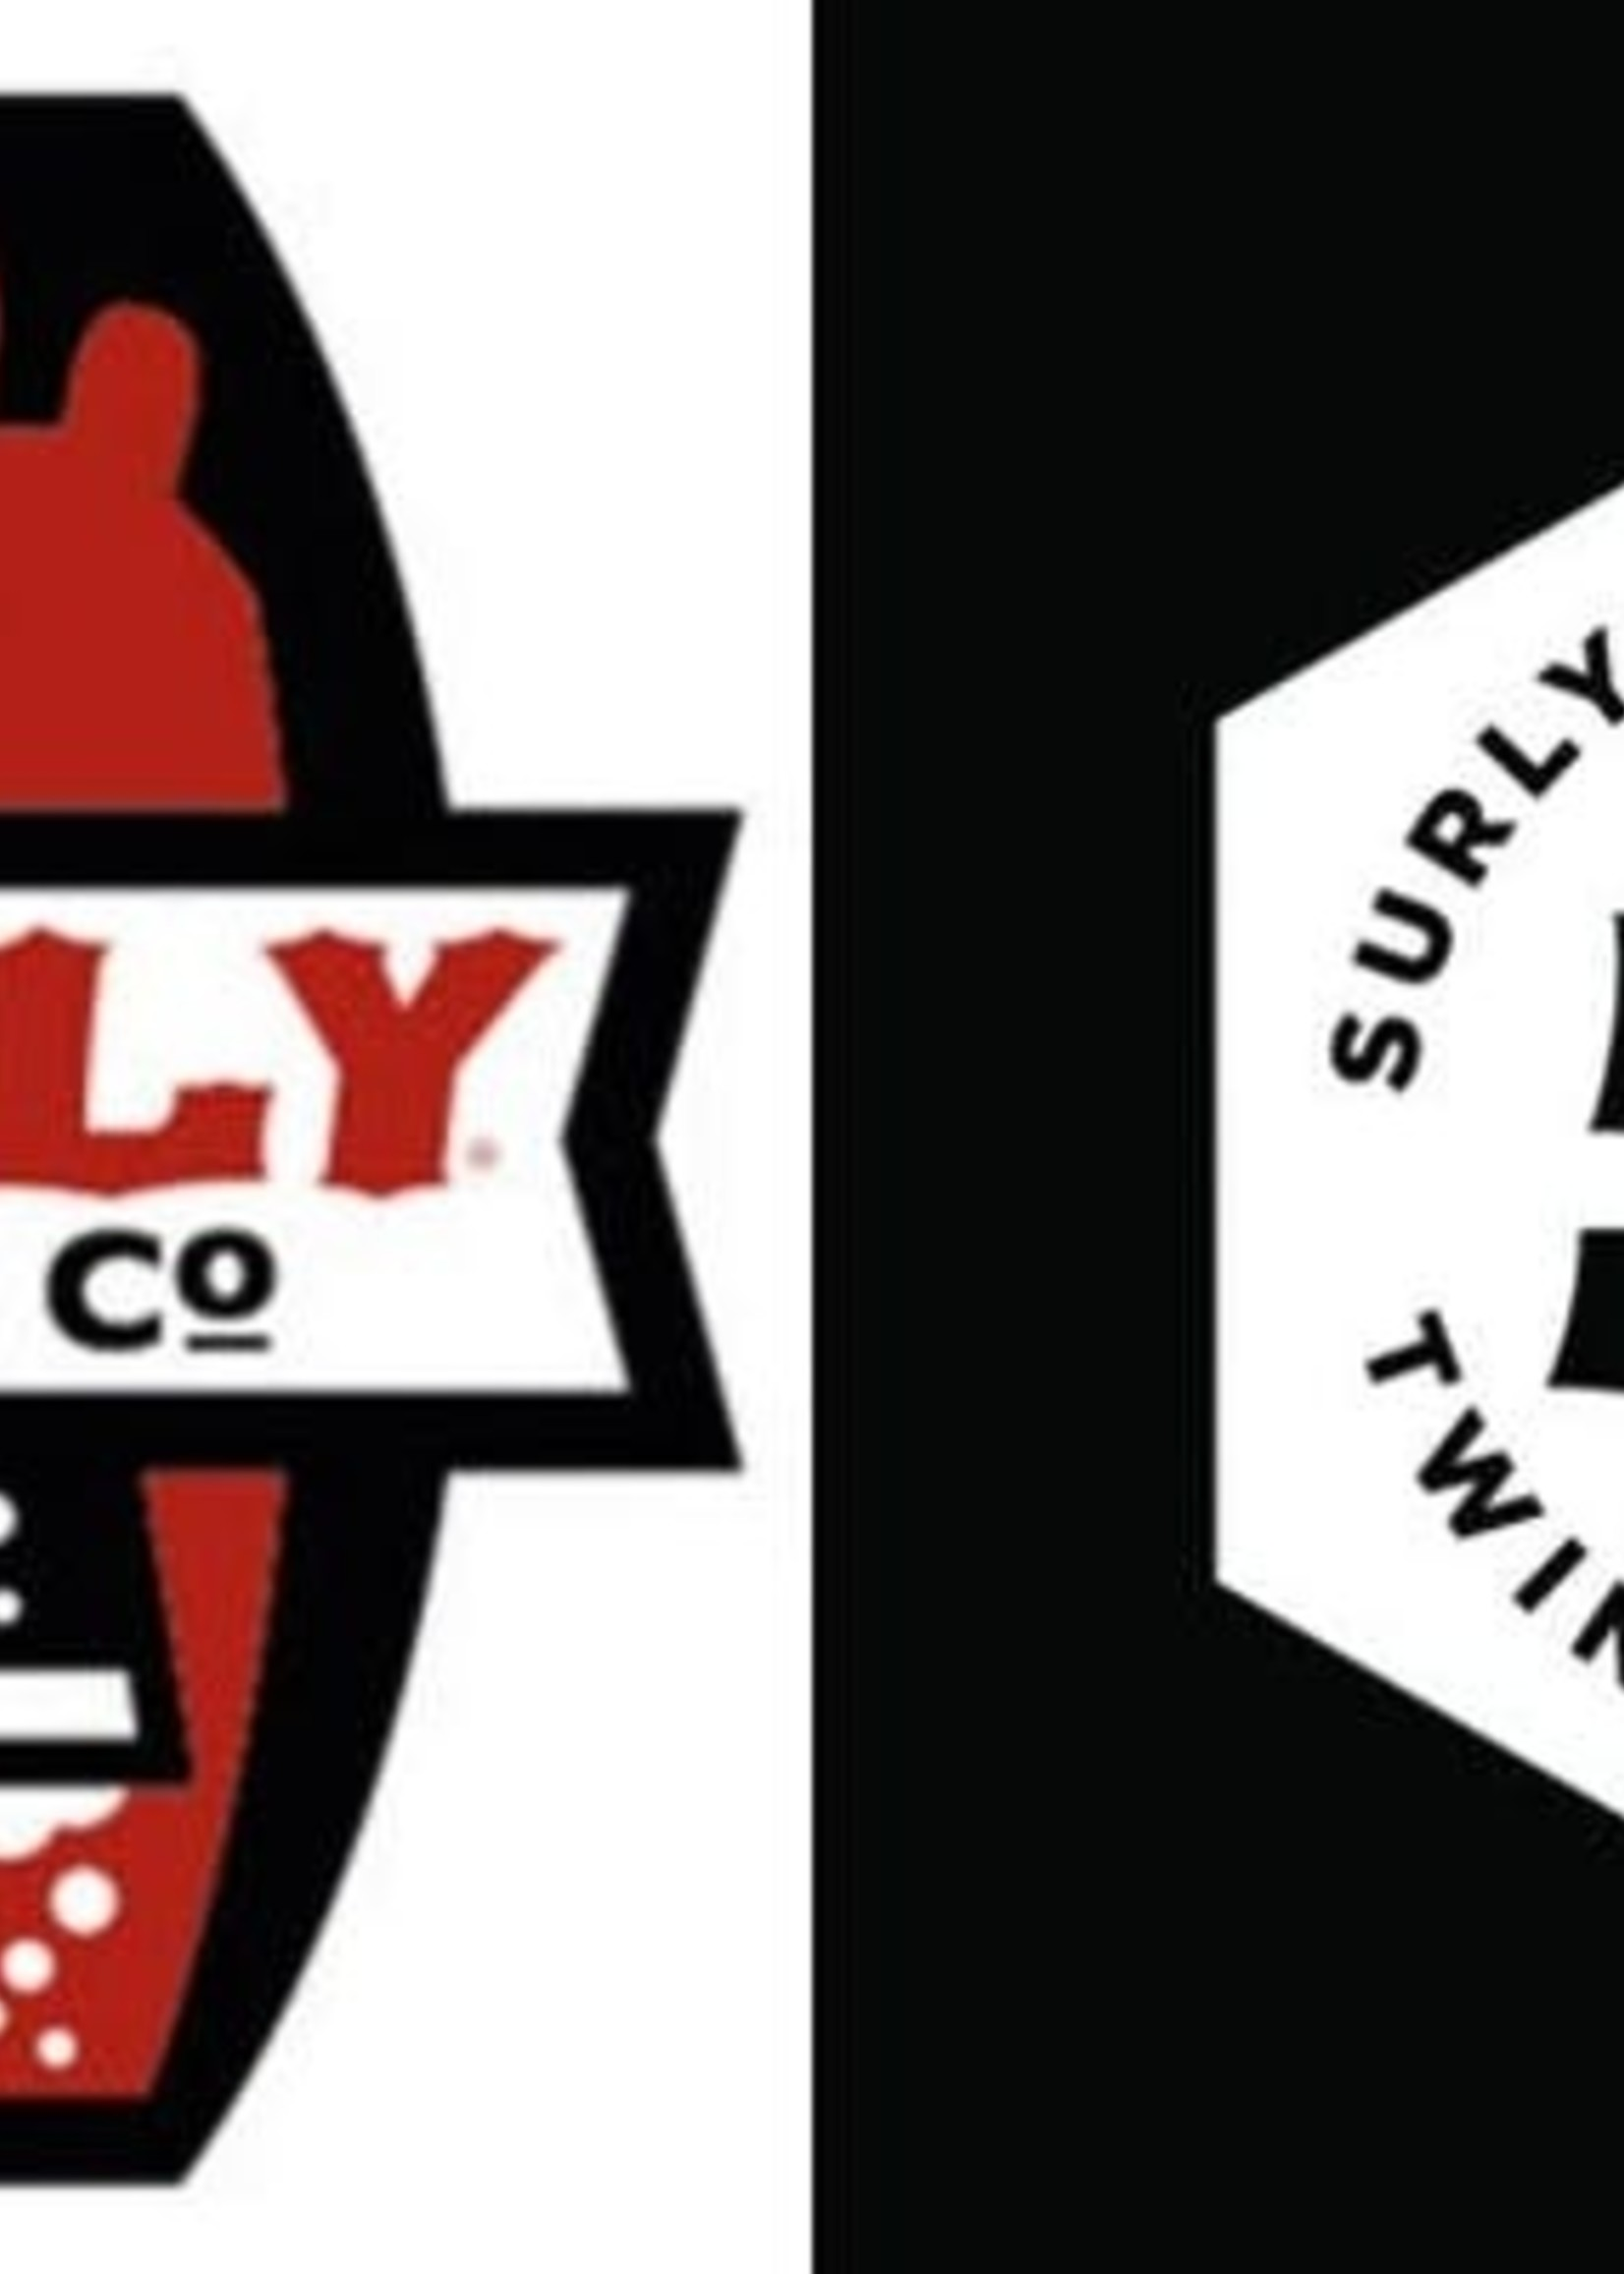 Surly VarietyPack - 12x12oz Cans